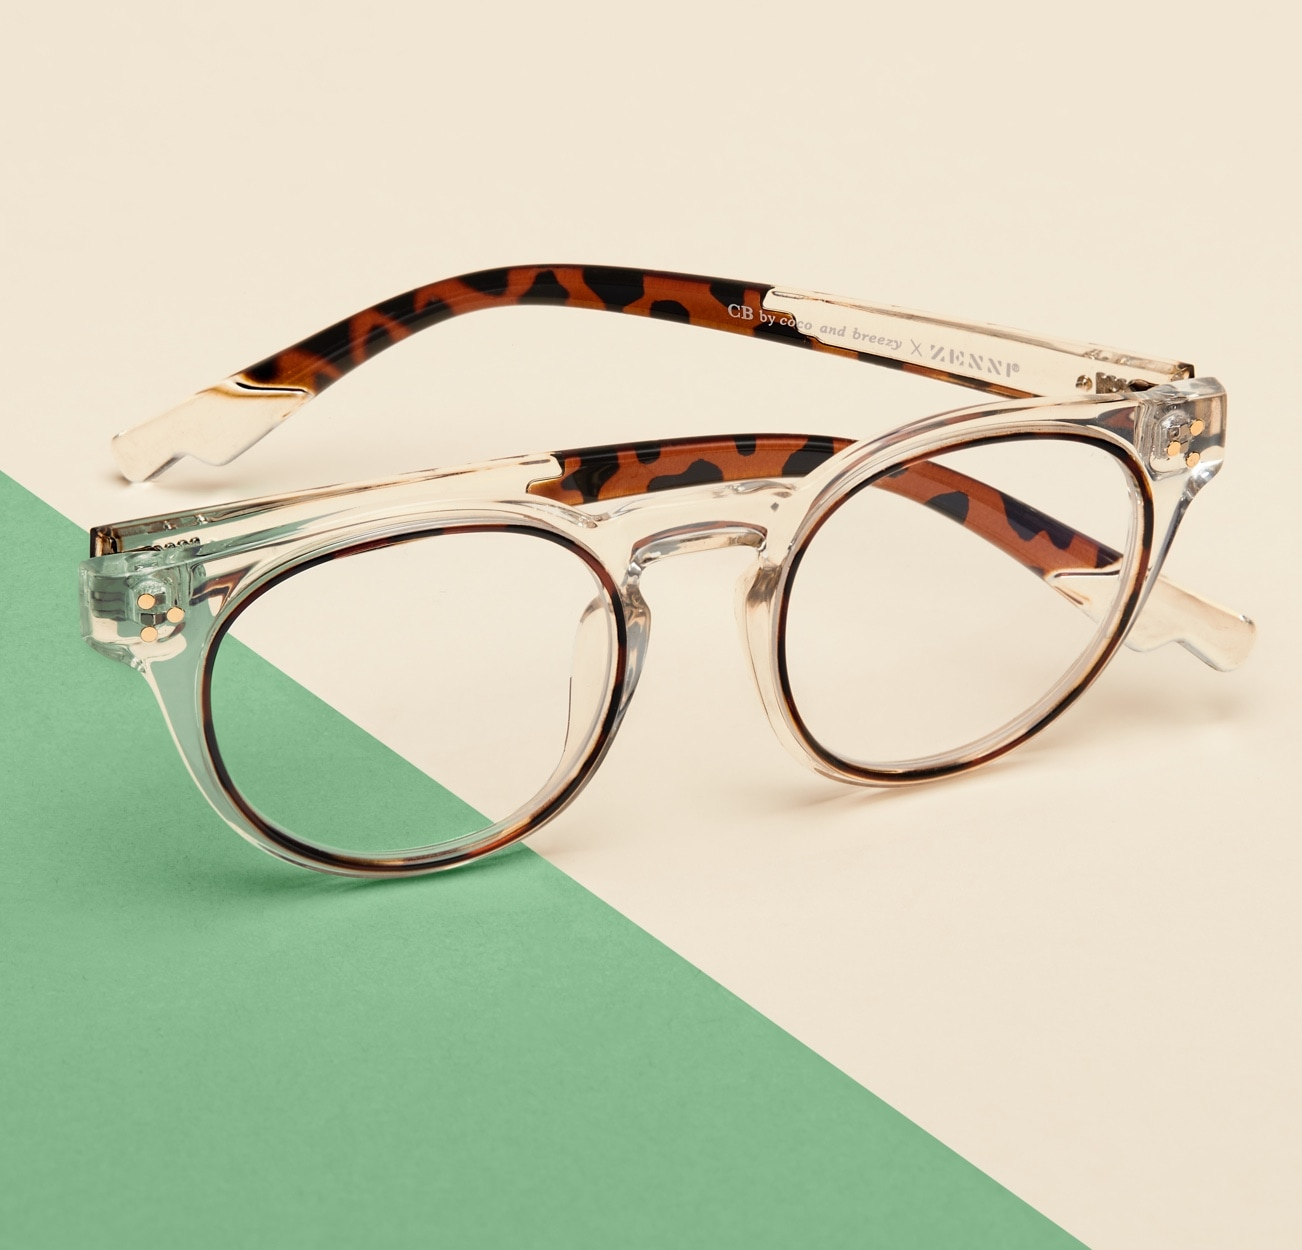 Image of Zenni clear square glasses #2034123 I am positive, against a cream and green background.